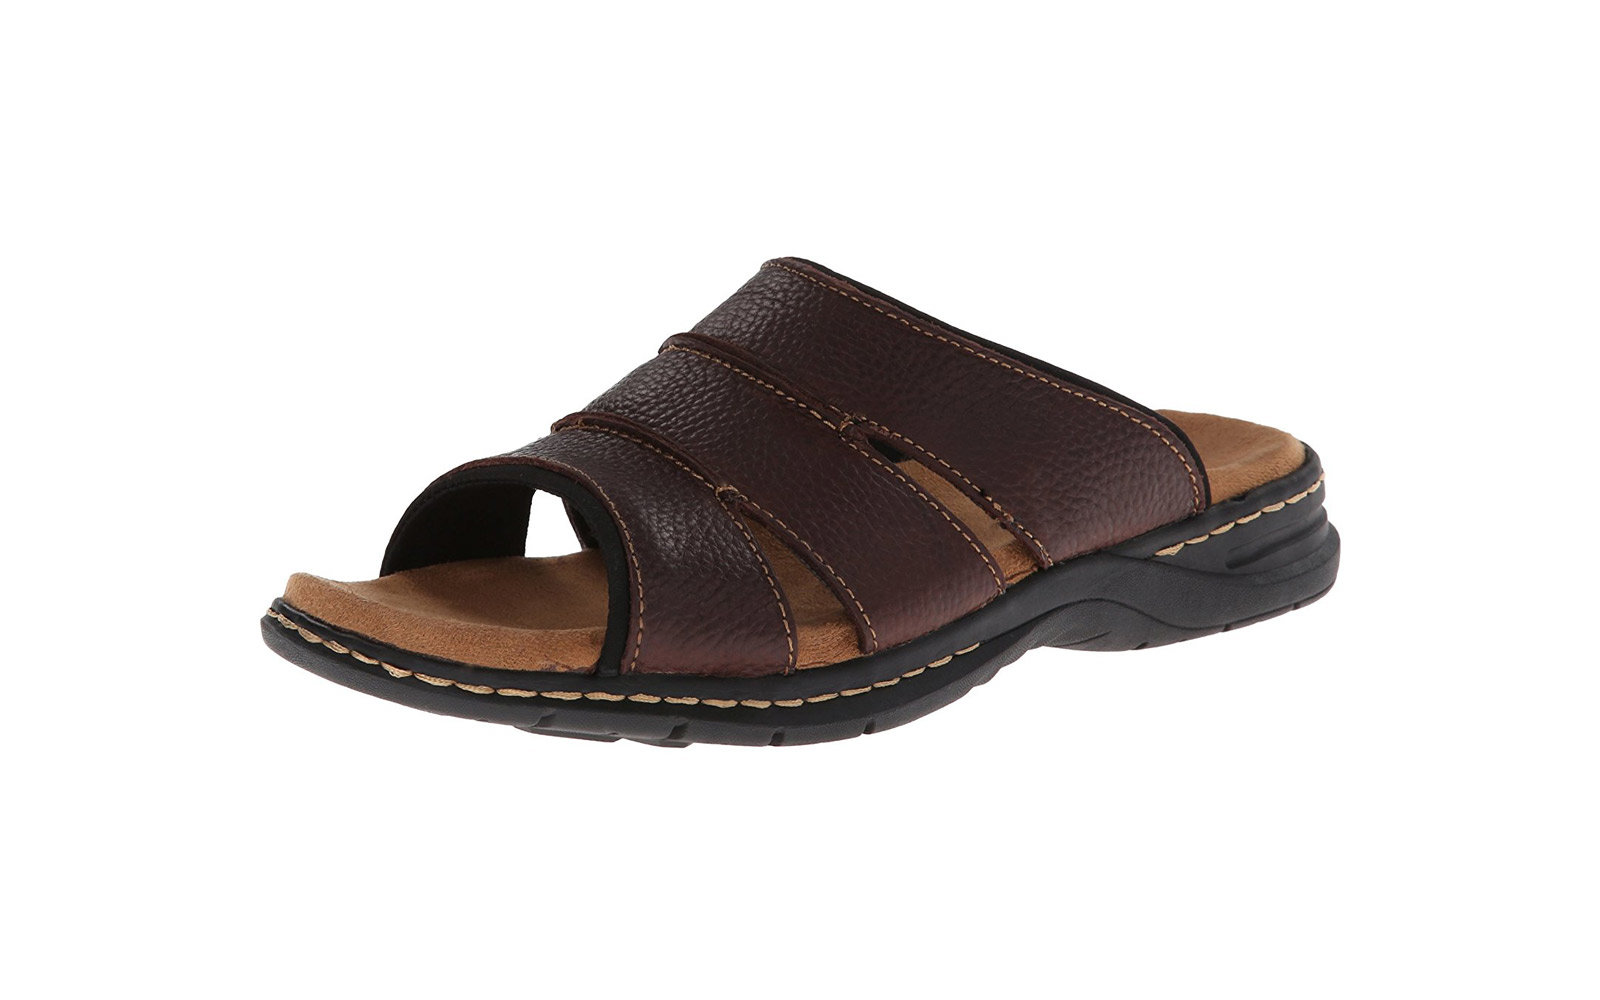 99828f48fae7b3 The Best Men s Sandals to Pack for Your Next Vacation